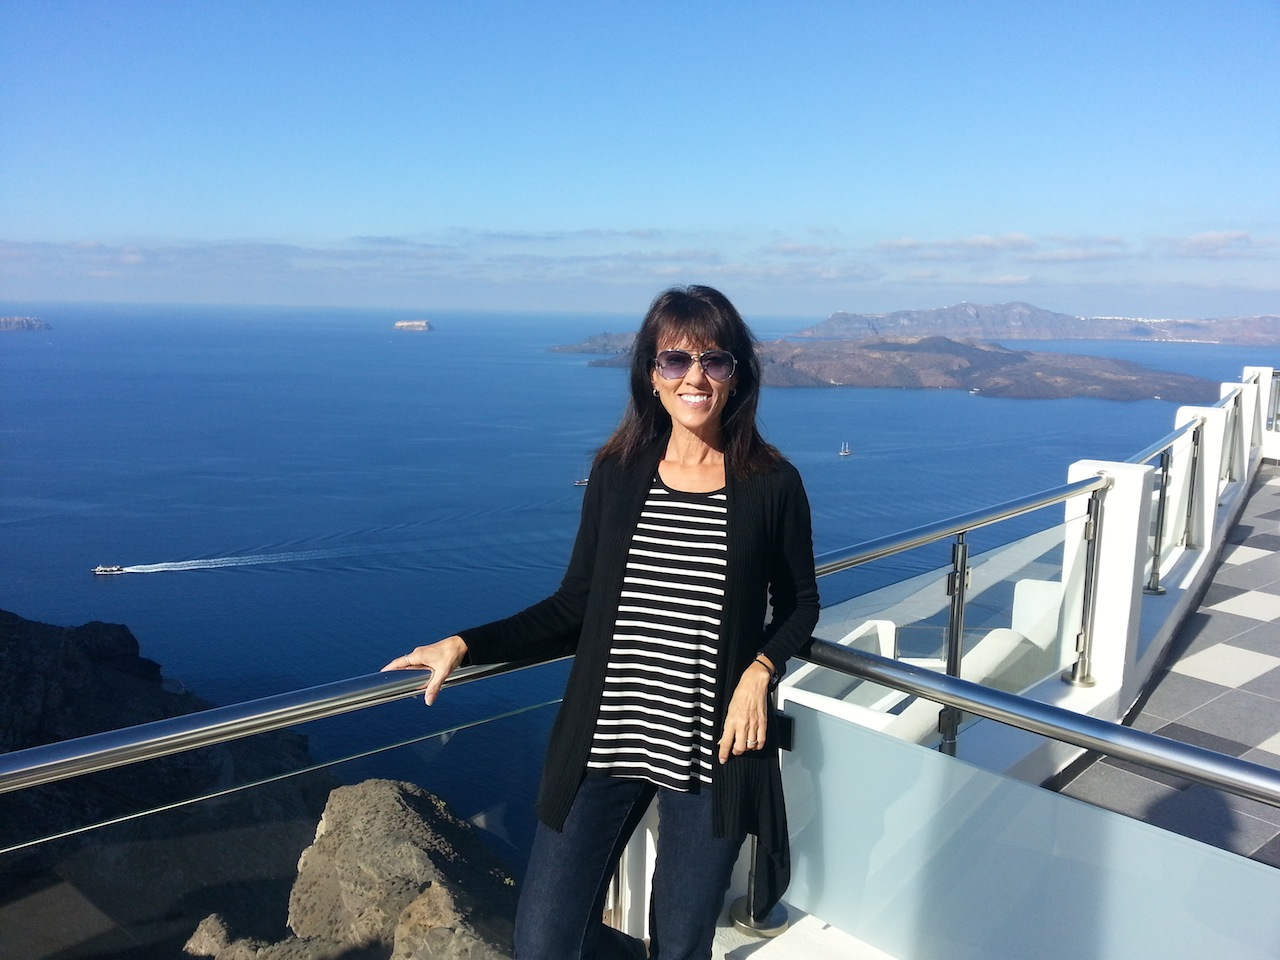 Sharon in Santorini, Greece